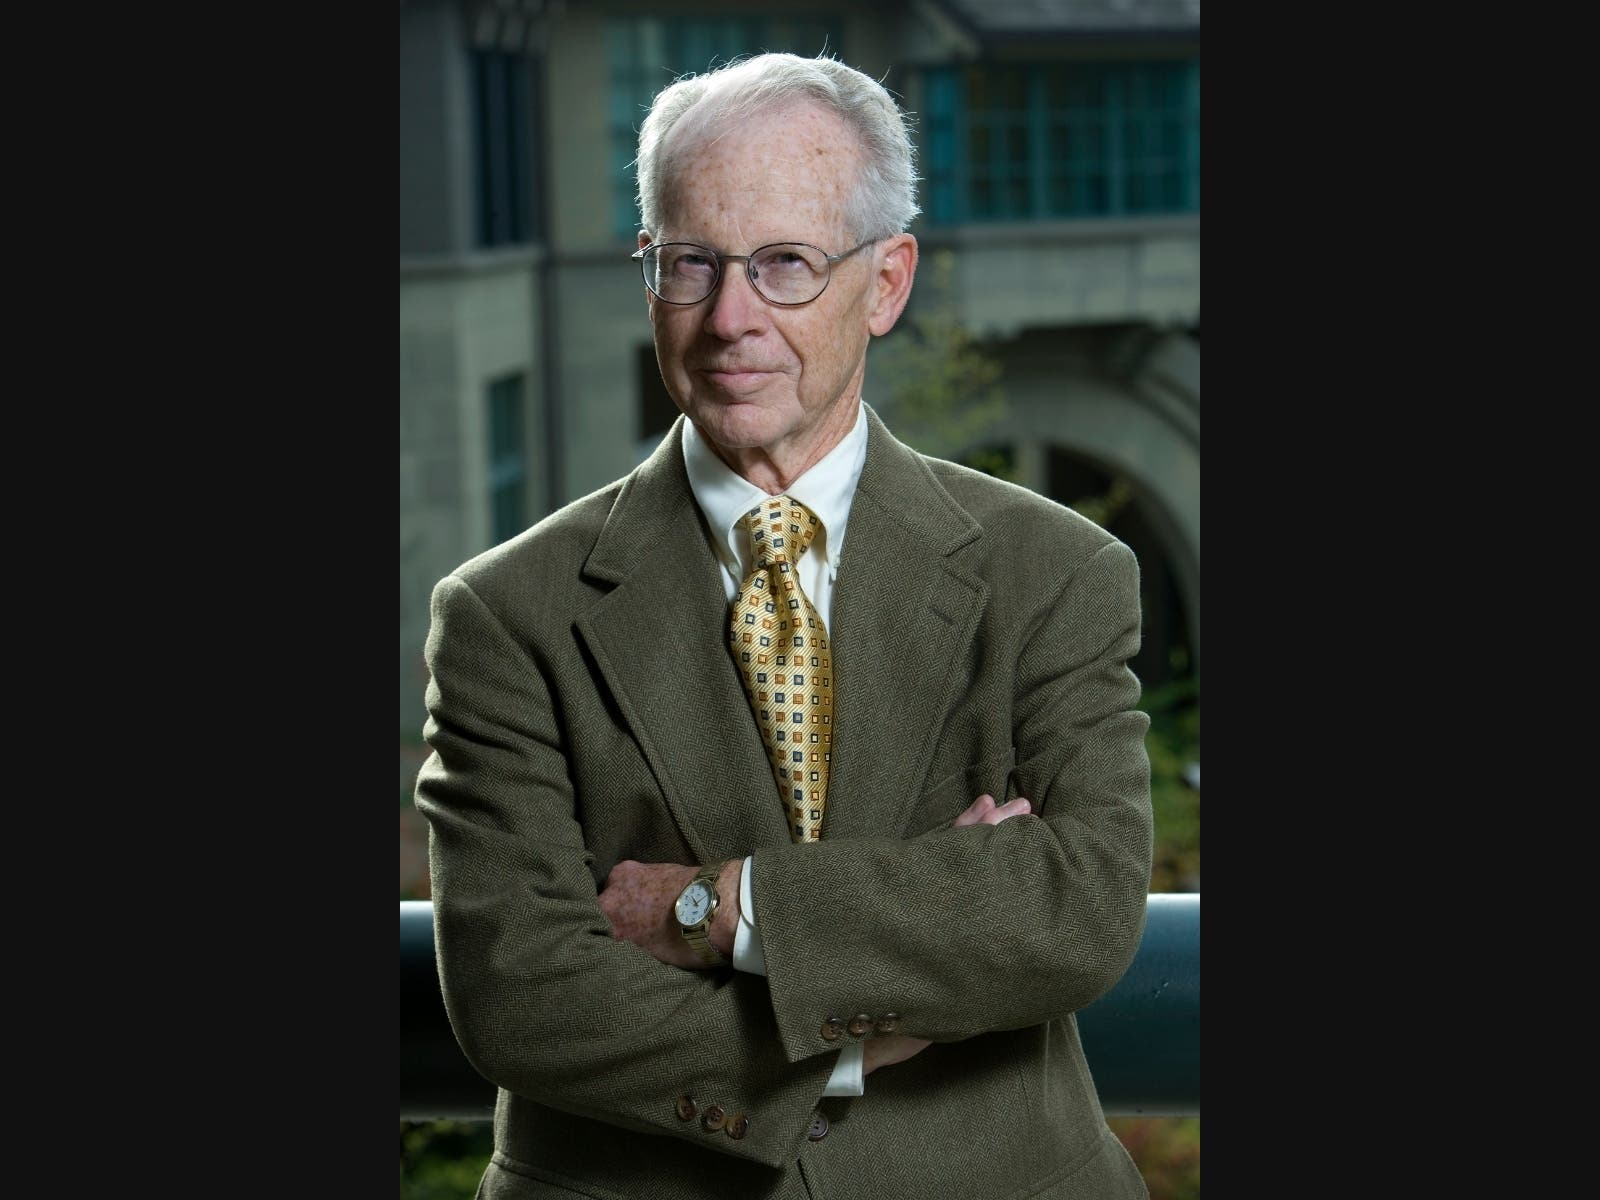 Oliver Williamson, UC Berkeley Professor And Nobel Winner, Dies